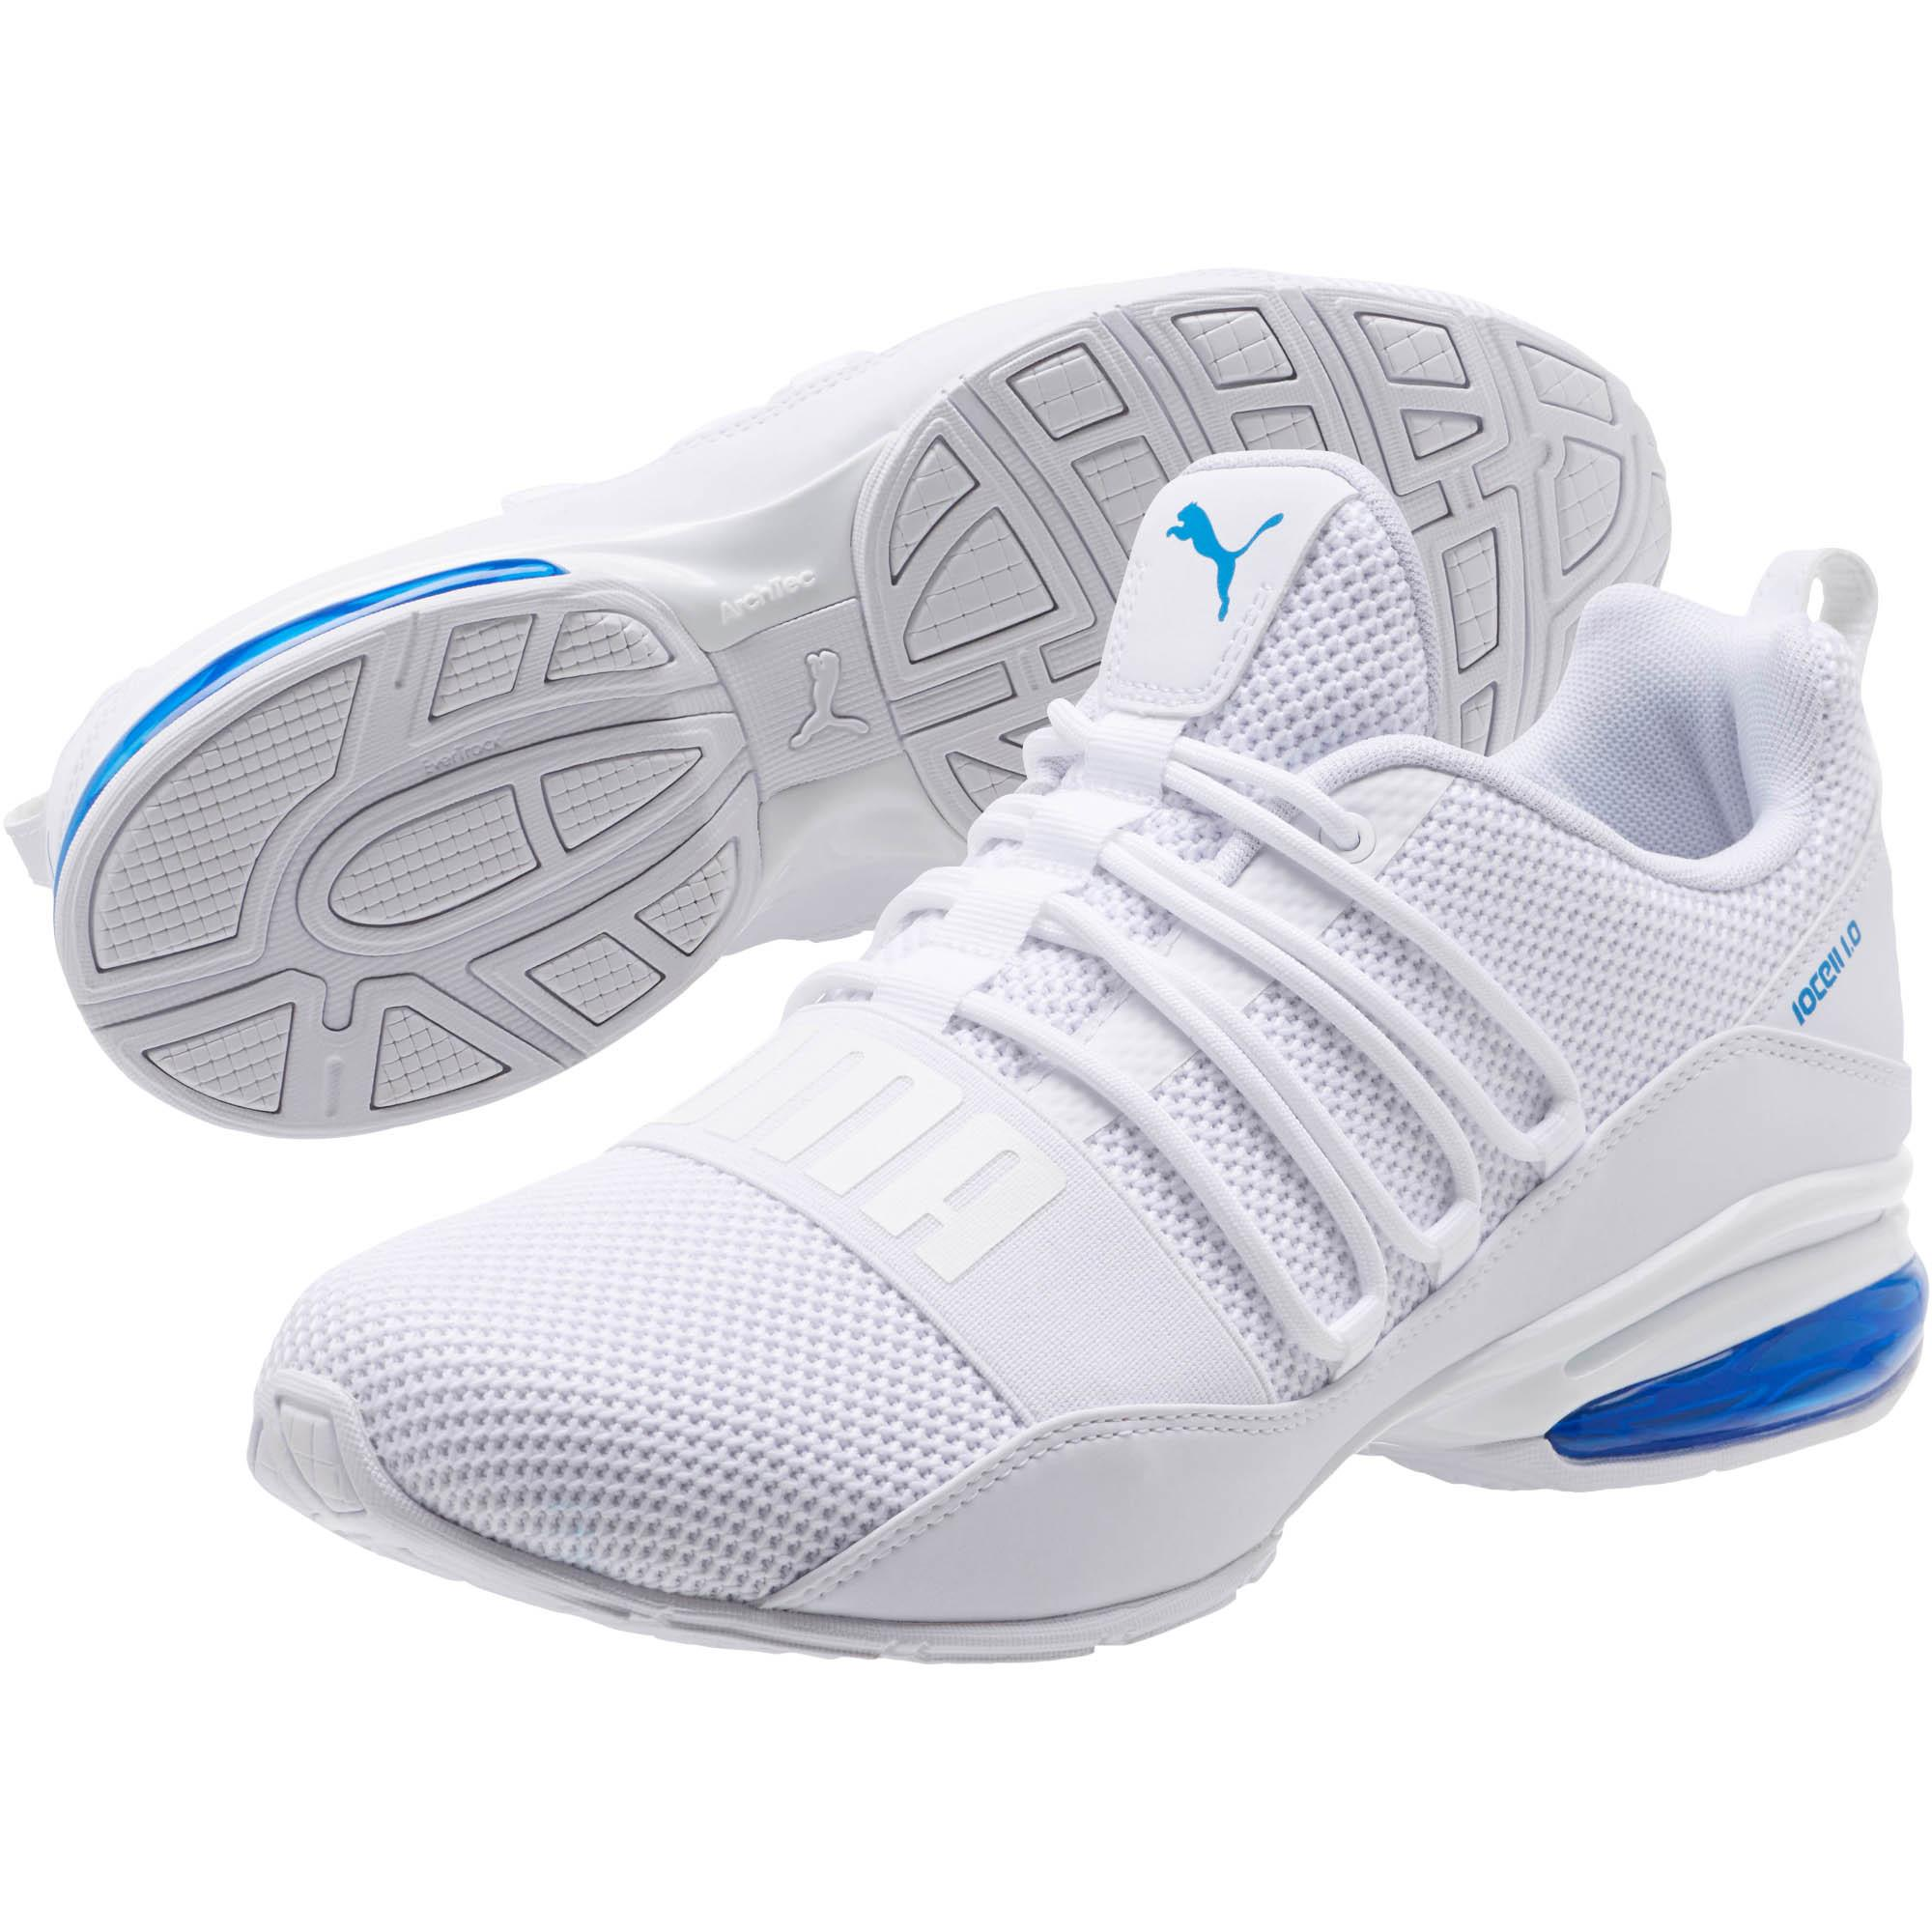 55f08ec155a PUMA - White Cell Regulate Woven Men s Running Shoes for Men - Lyst. View  fullscreen